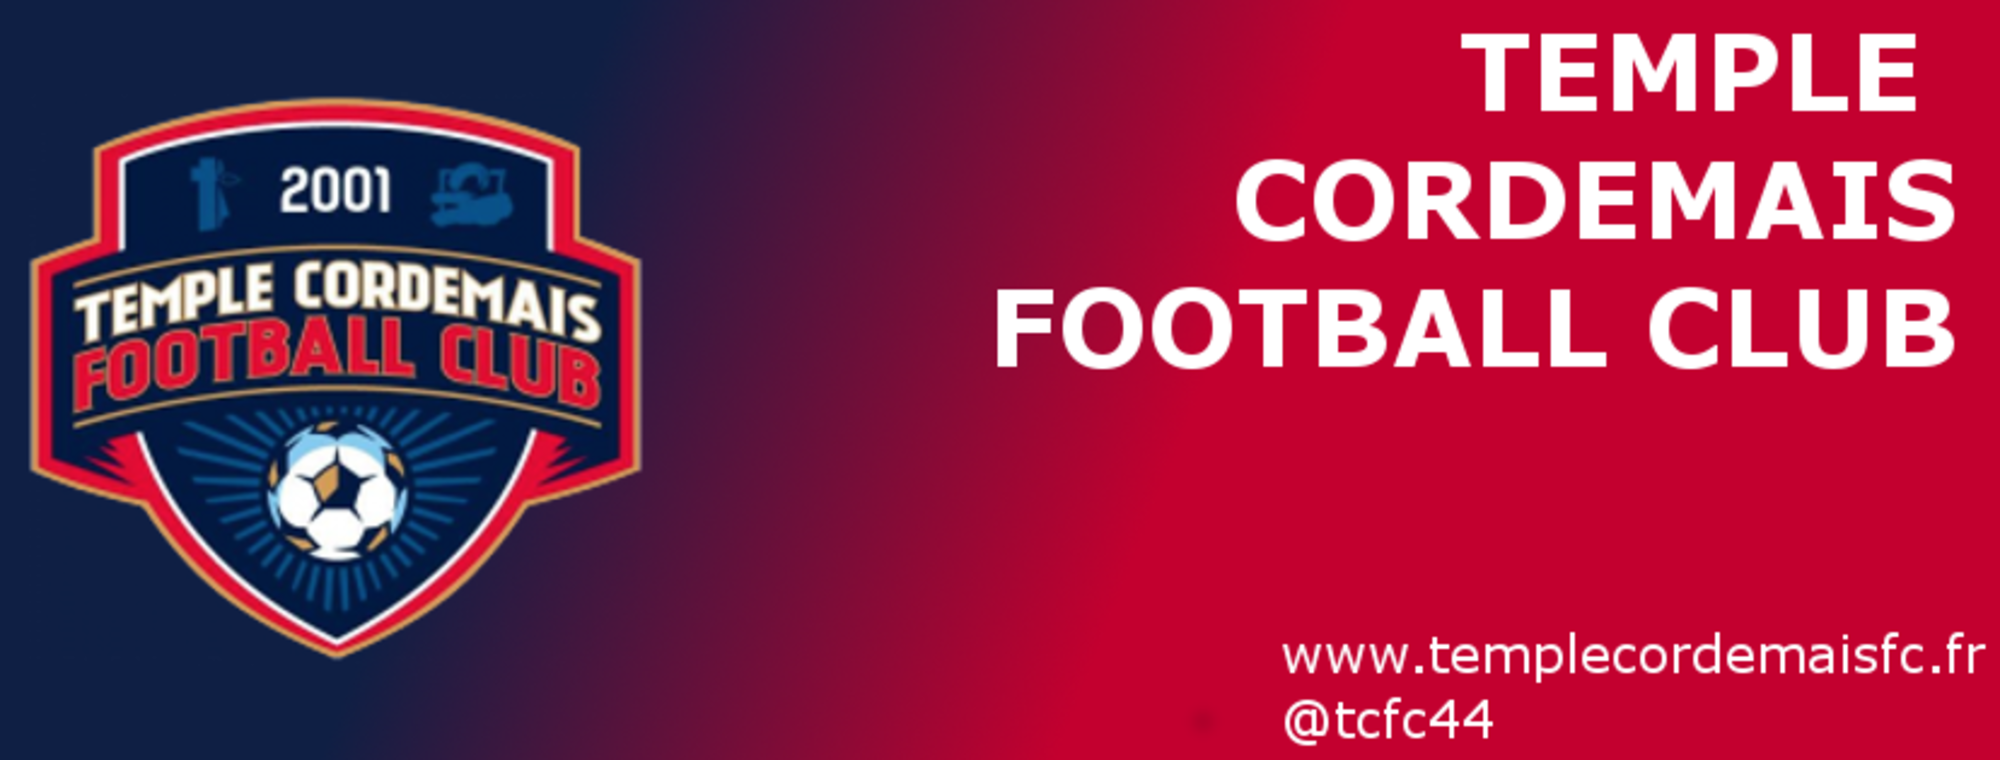 TEMPLE CORDEMAIS FOOTBALL CLUB